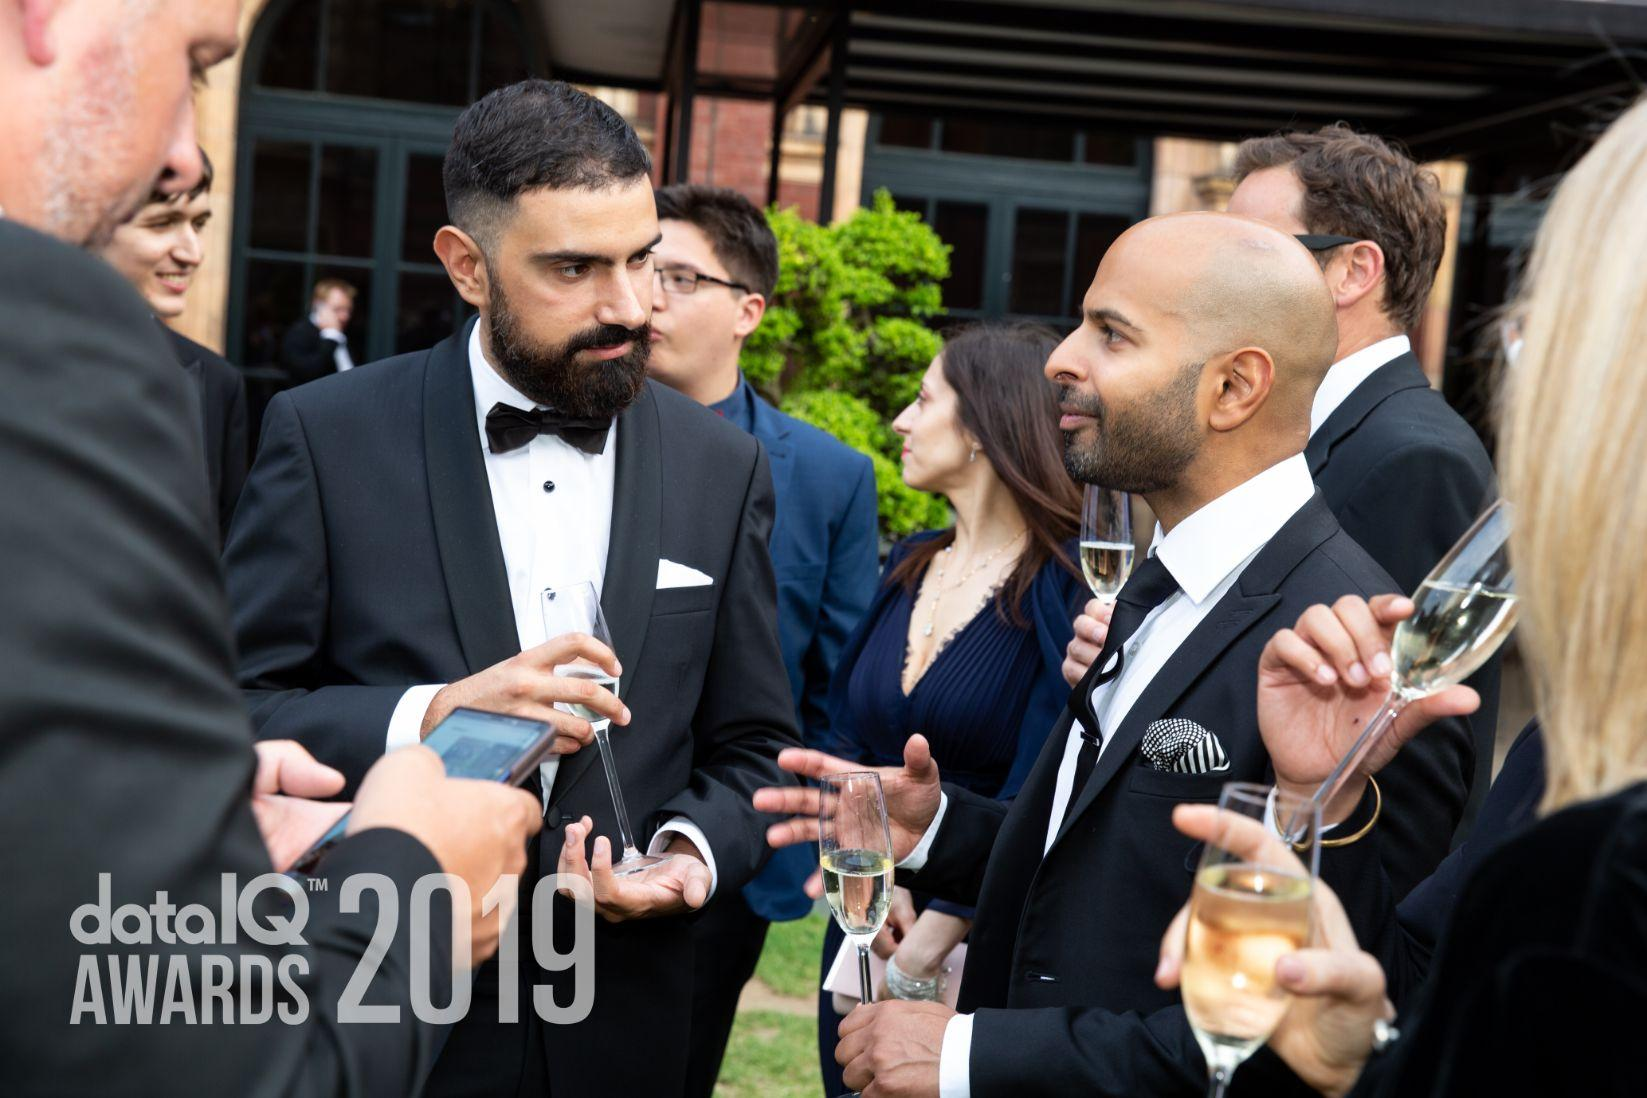 Awards 2019 Image 142